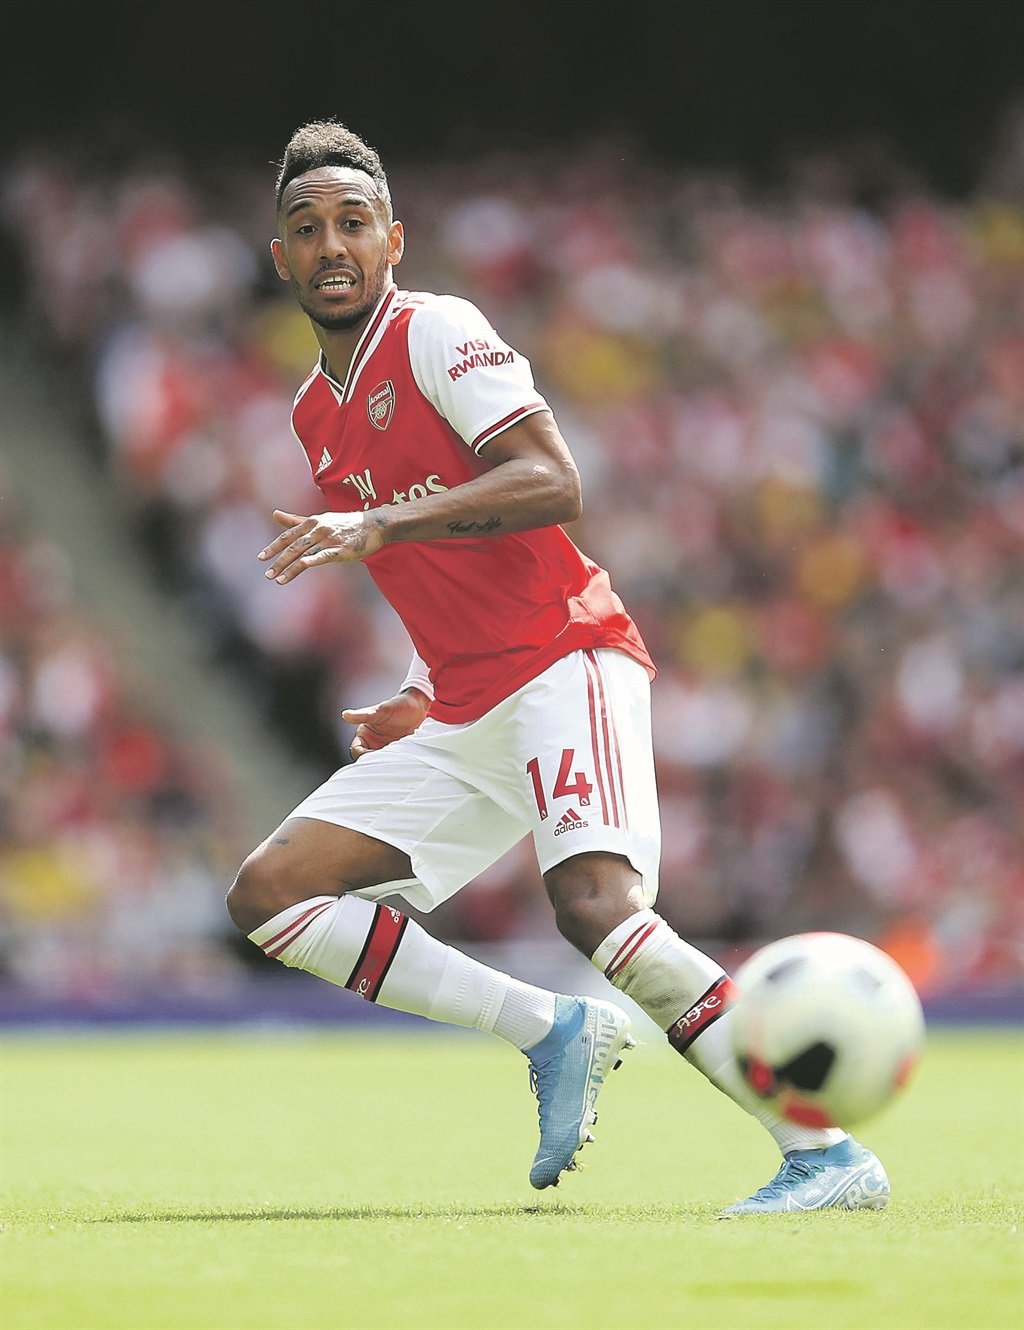 Pierre-Emerick Aubameyang will carry Arsenal's hopes in the London derby against Spurs this afternoon   Picture: Julian Finney / Getty Images